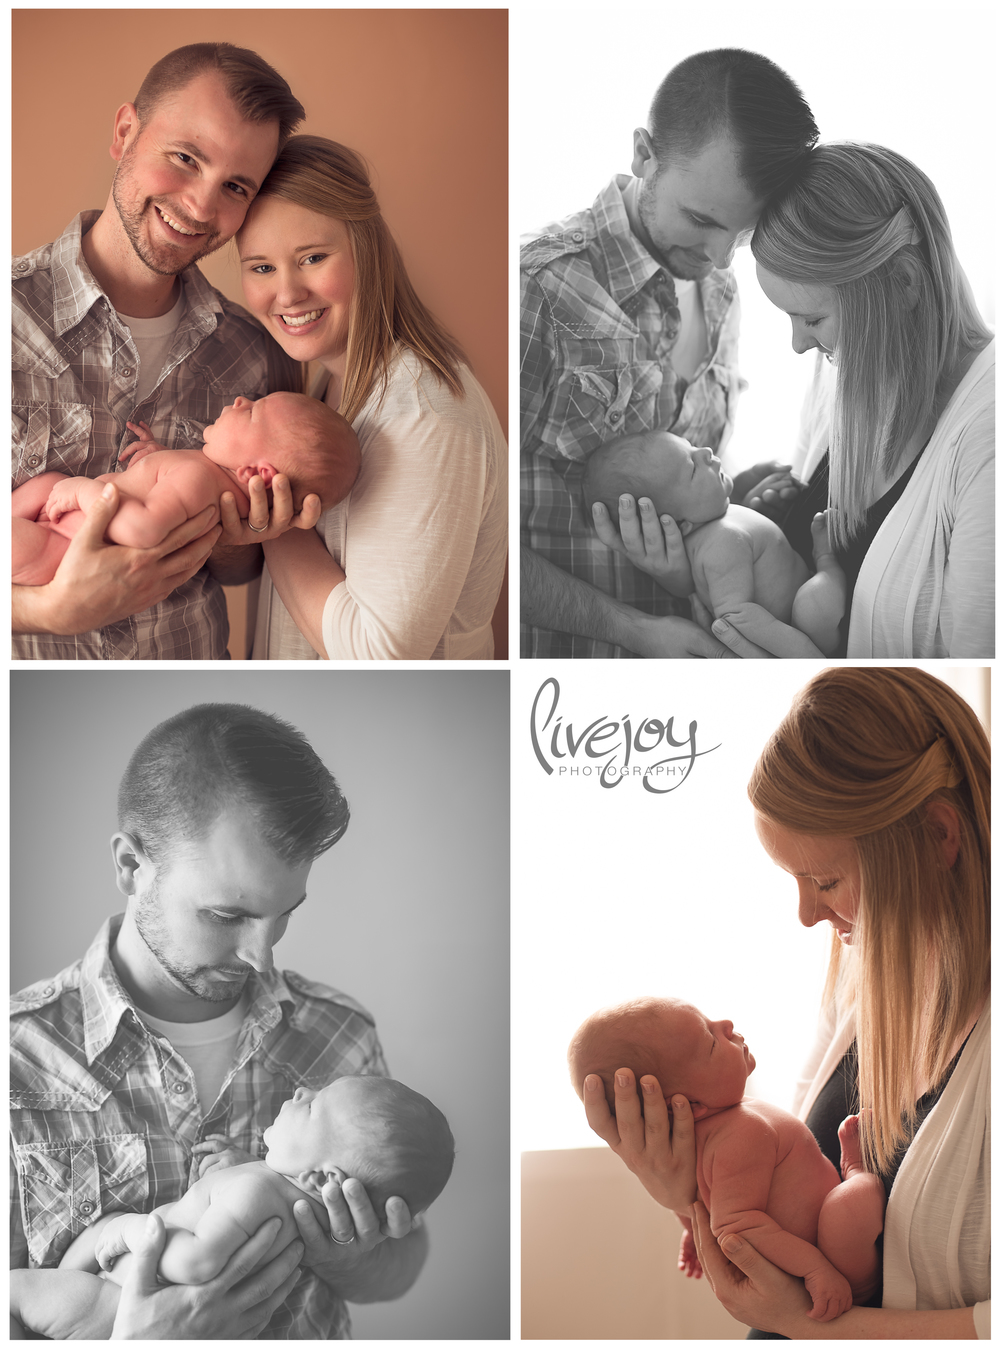 Newborn Boy Photography | Oregon | LiveJoy Photography